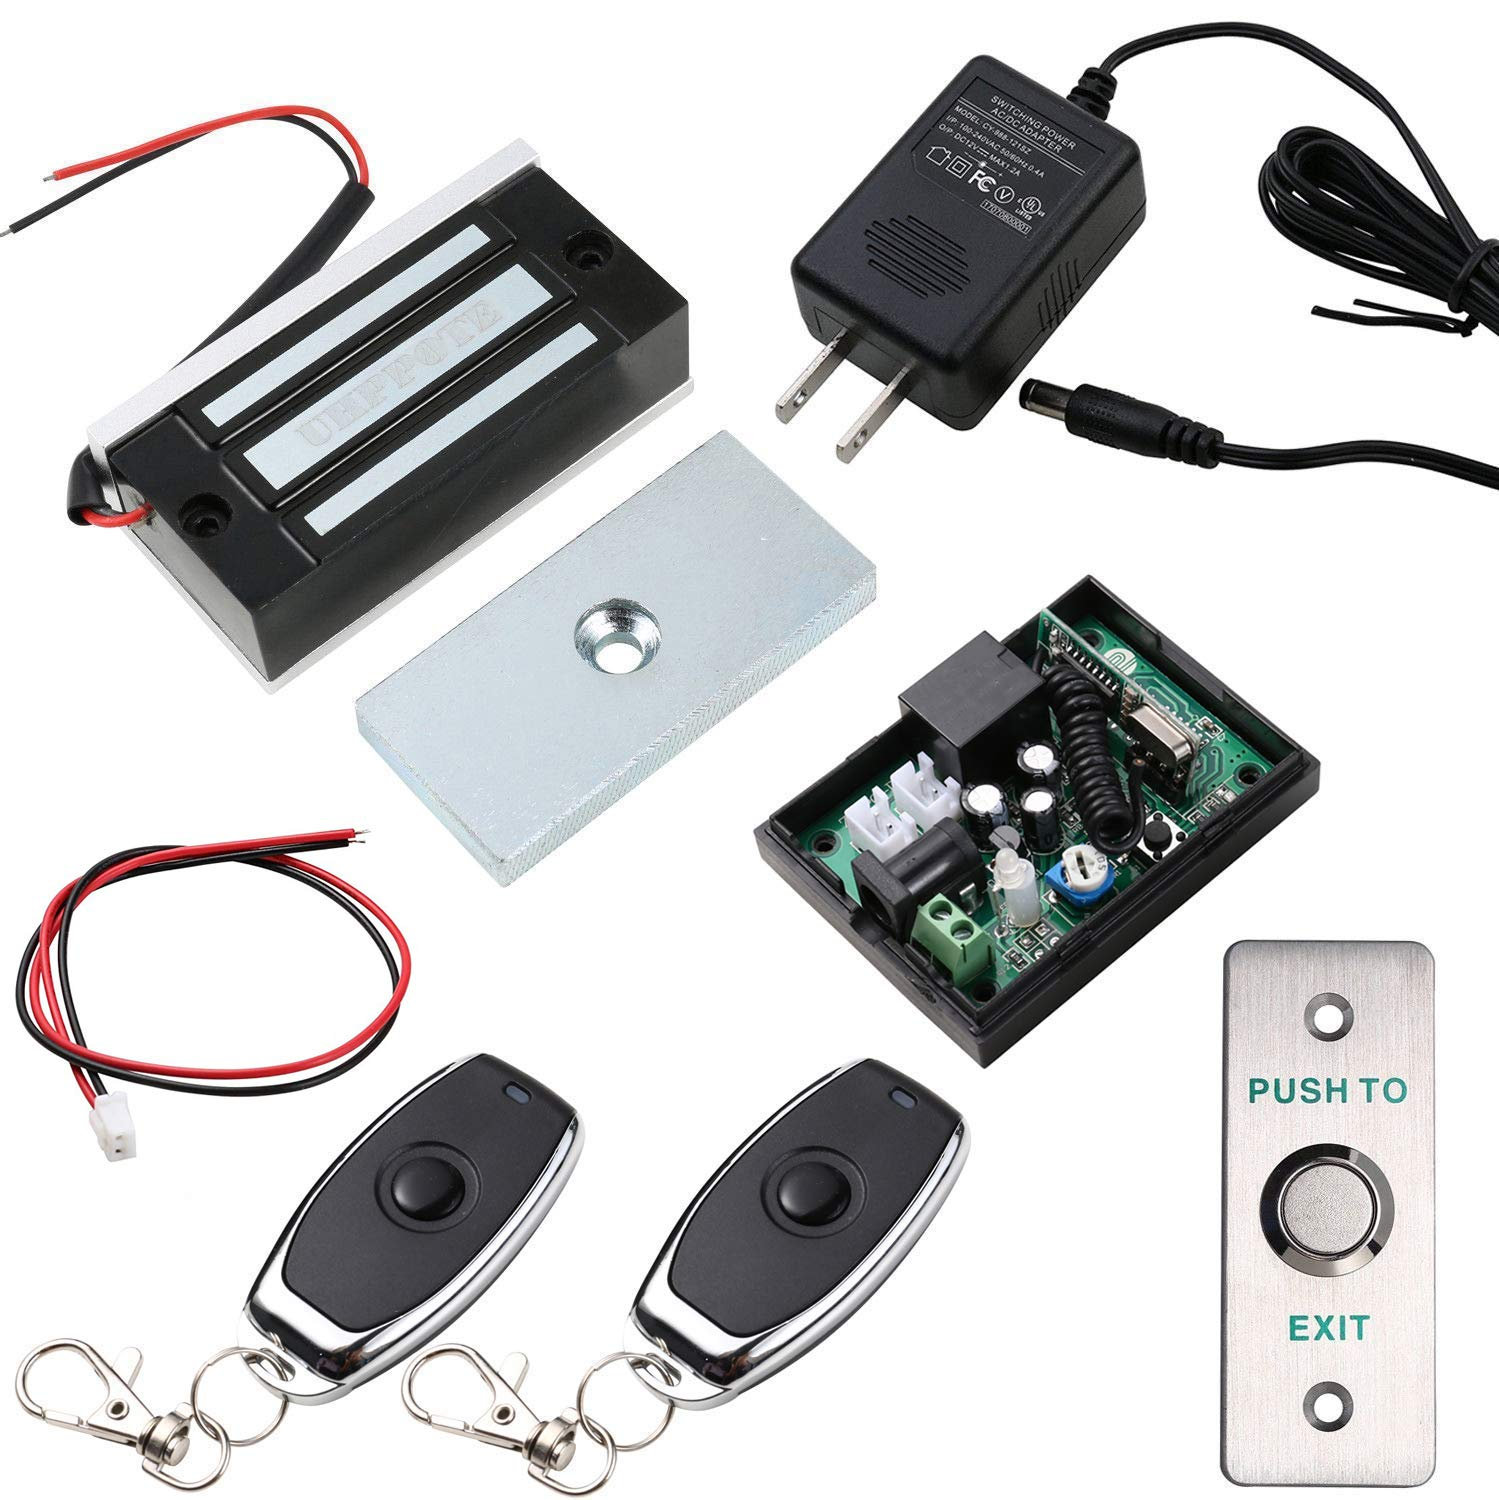 UHPPOTE Access Control System with 130lbs Force Electromagnetic Lock Remote  Exit Button